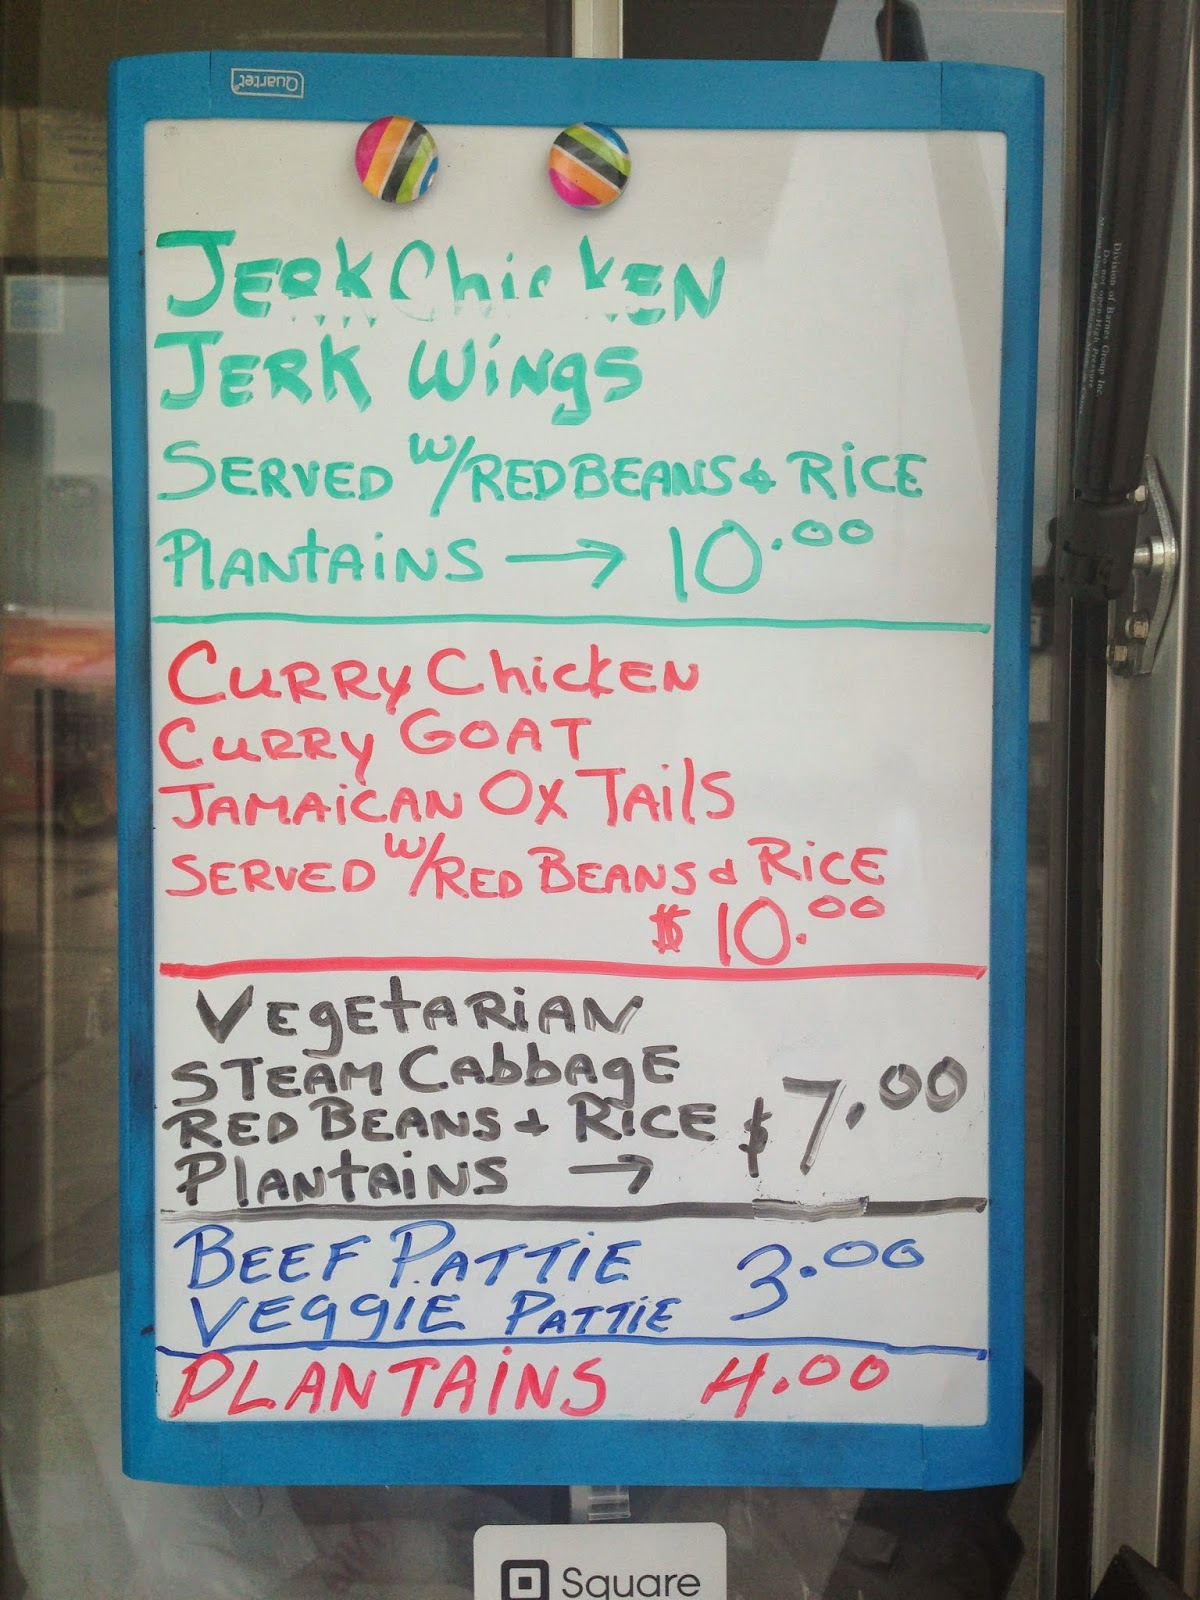 Binghiman Jerk, Food Truck Houston TX Menu